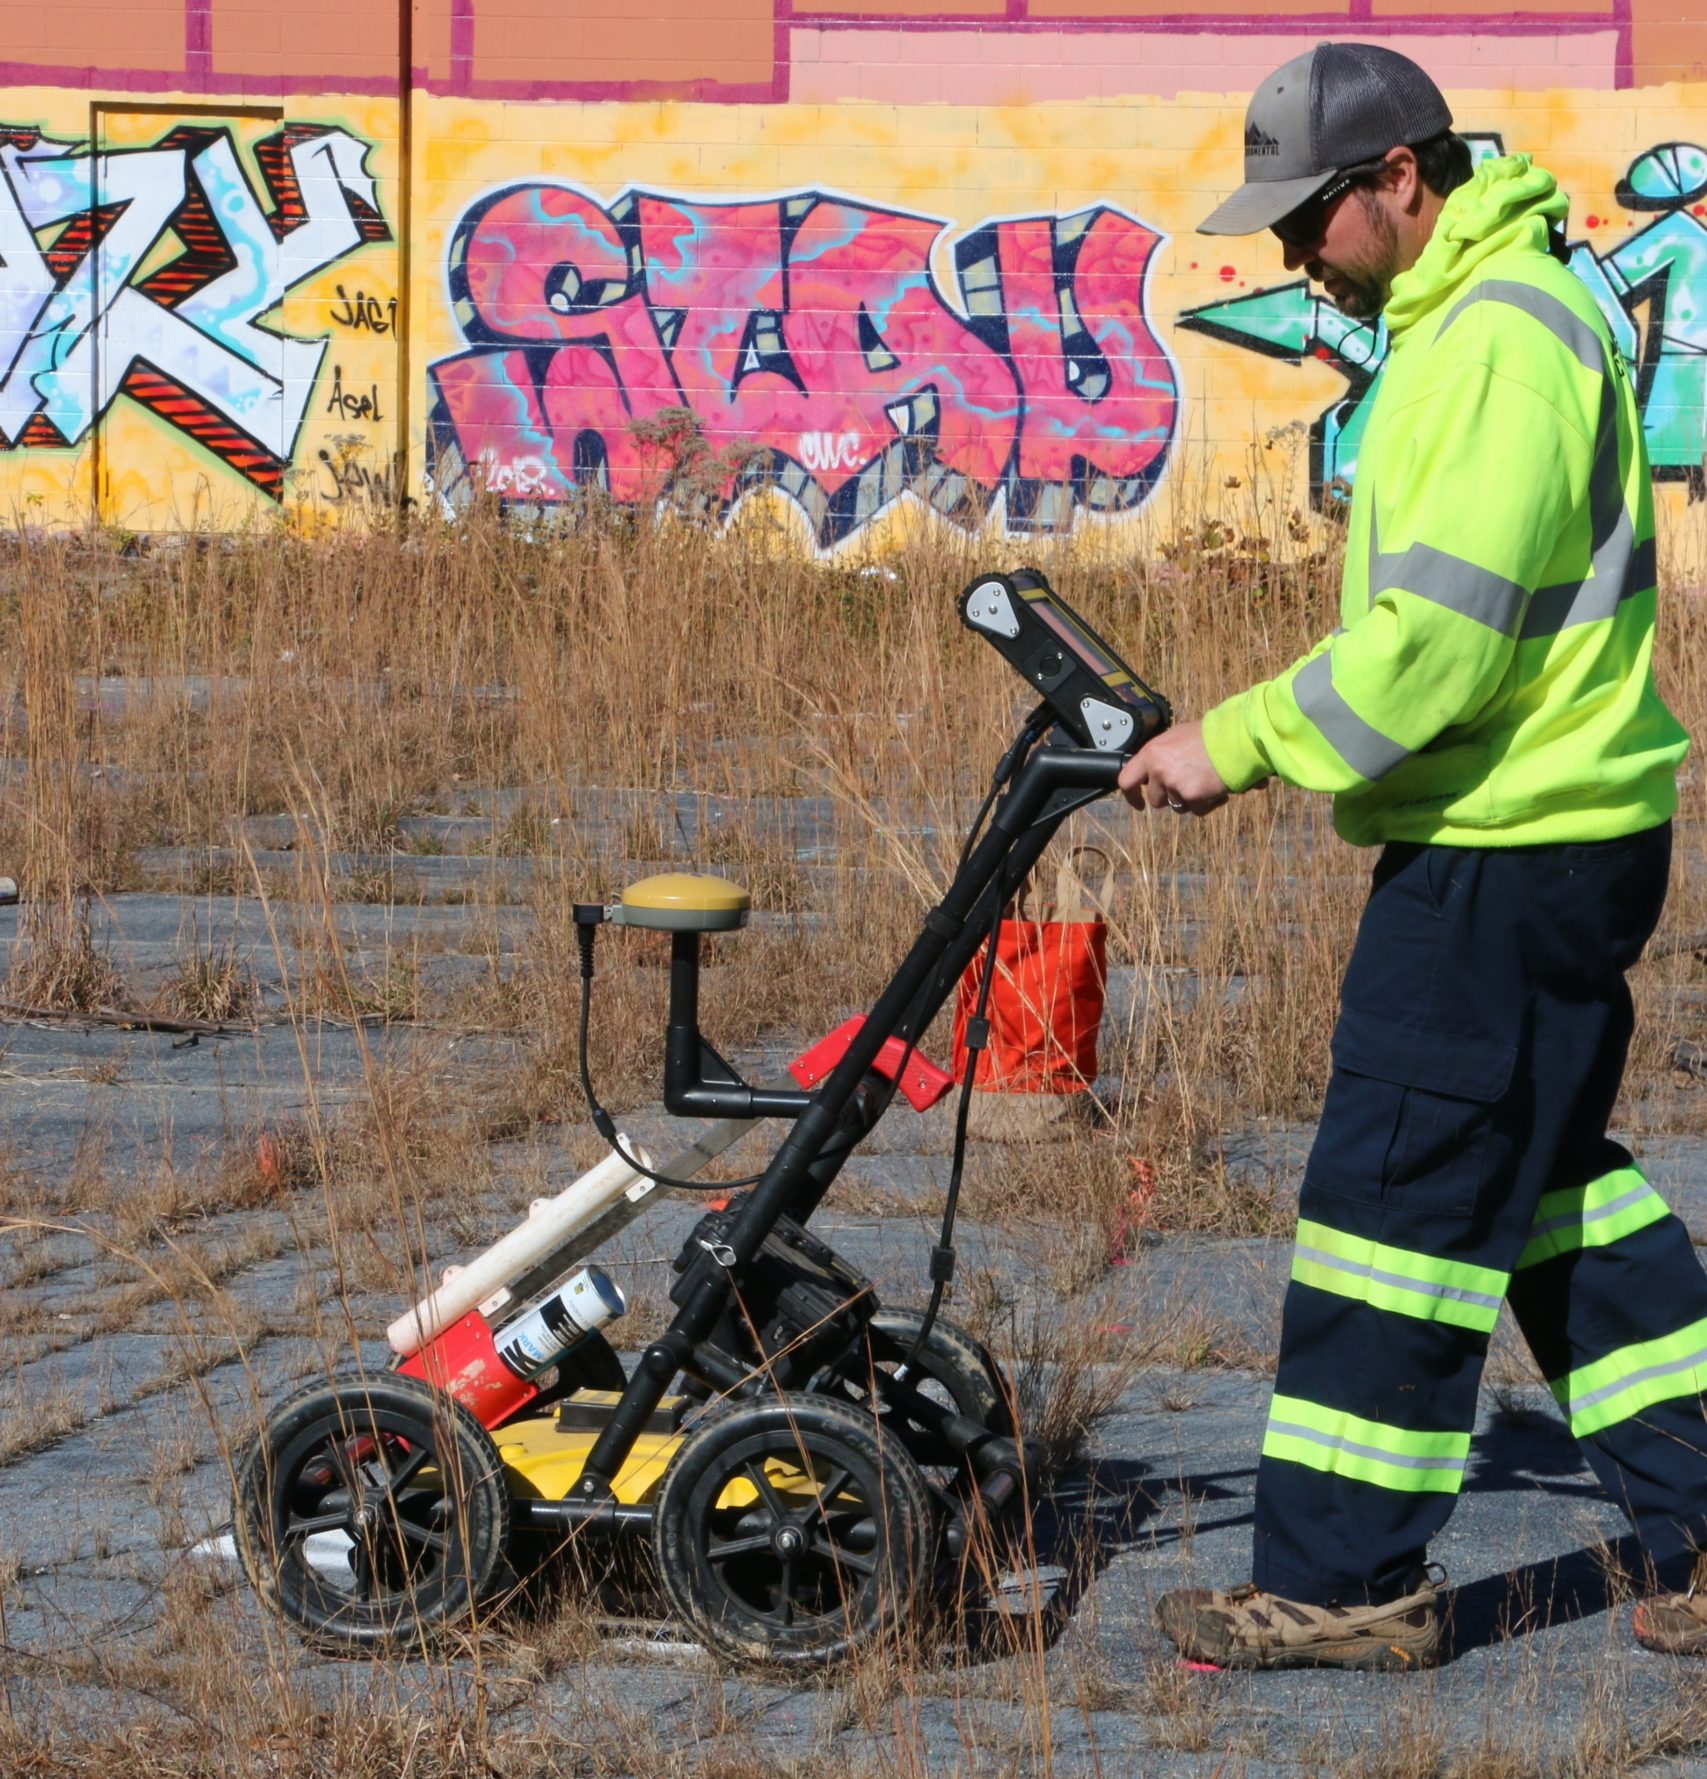 Technician using GPR for borehole clearance at abandoned industrial site - graffiti in background